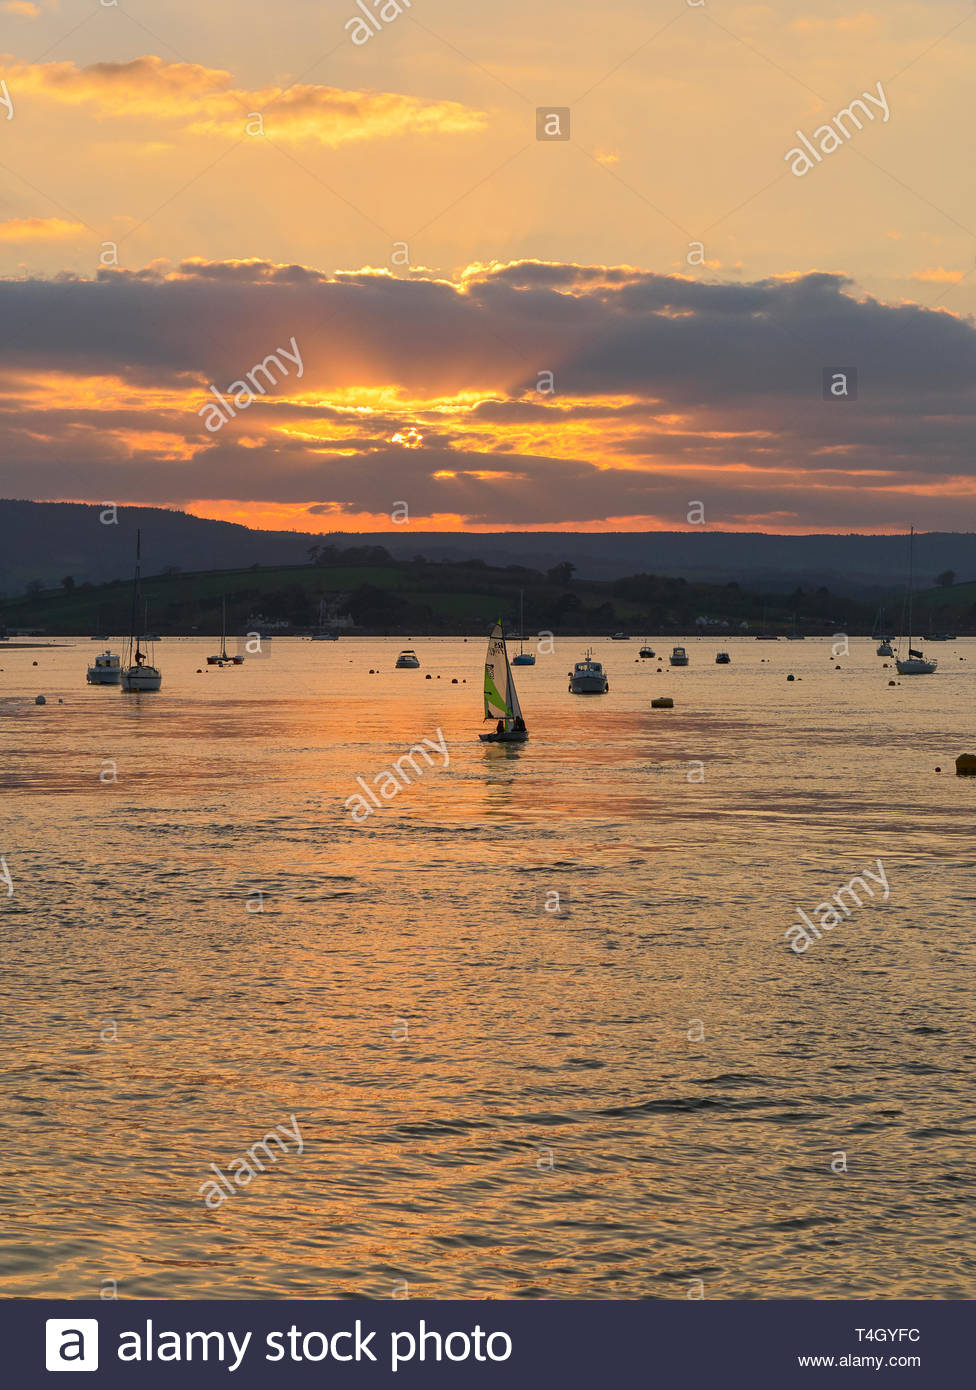 Sunset on the river exe estuary in the seaside resort of exmouth in south devon england uk - Stock Image